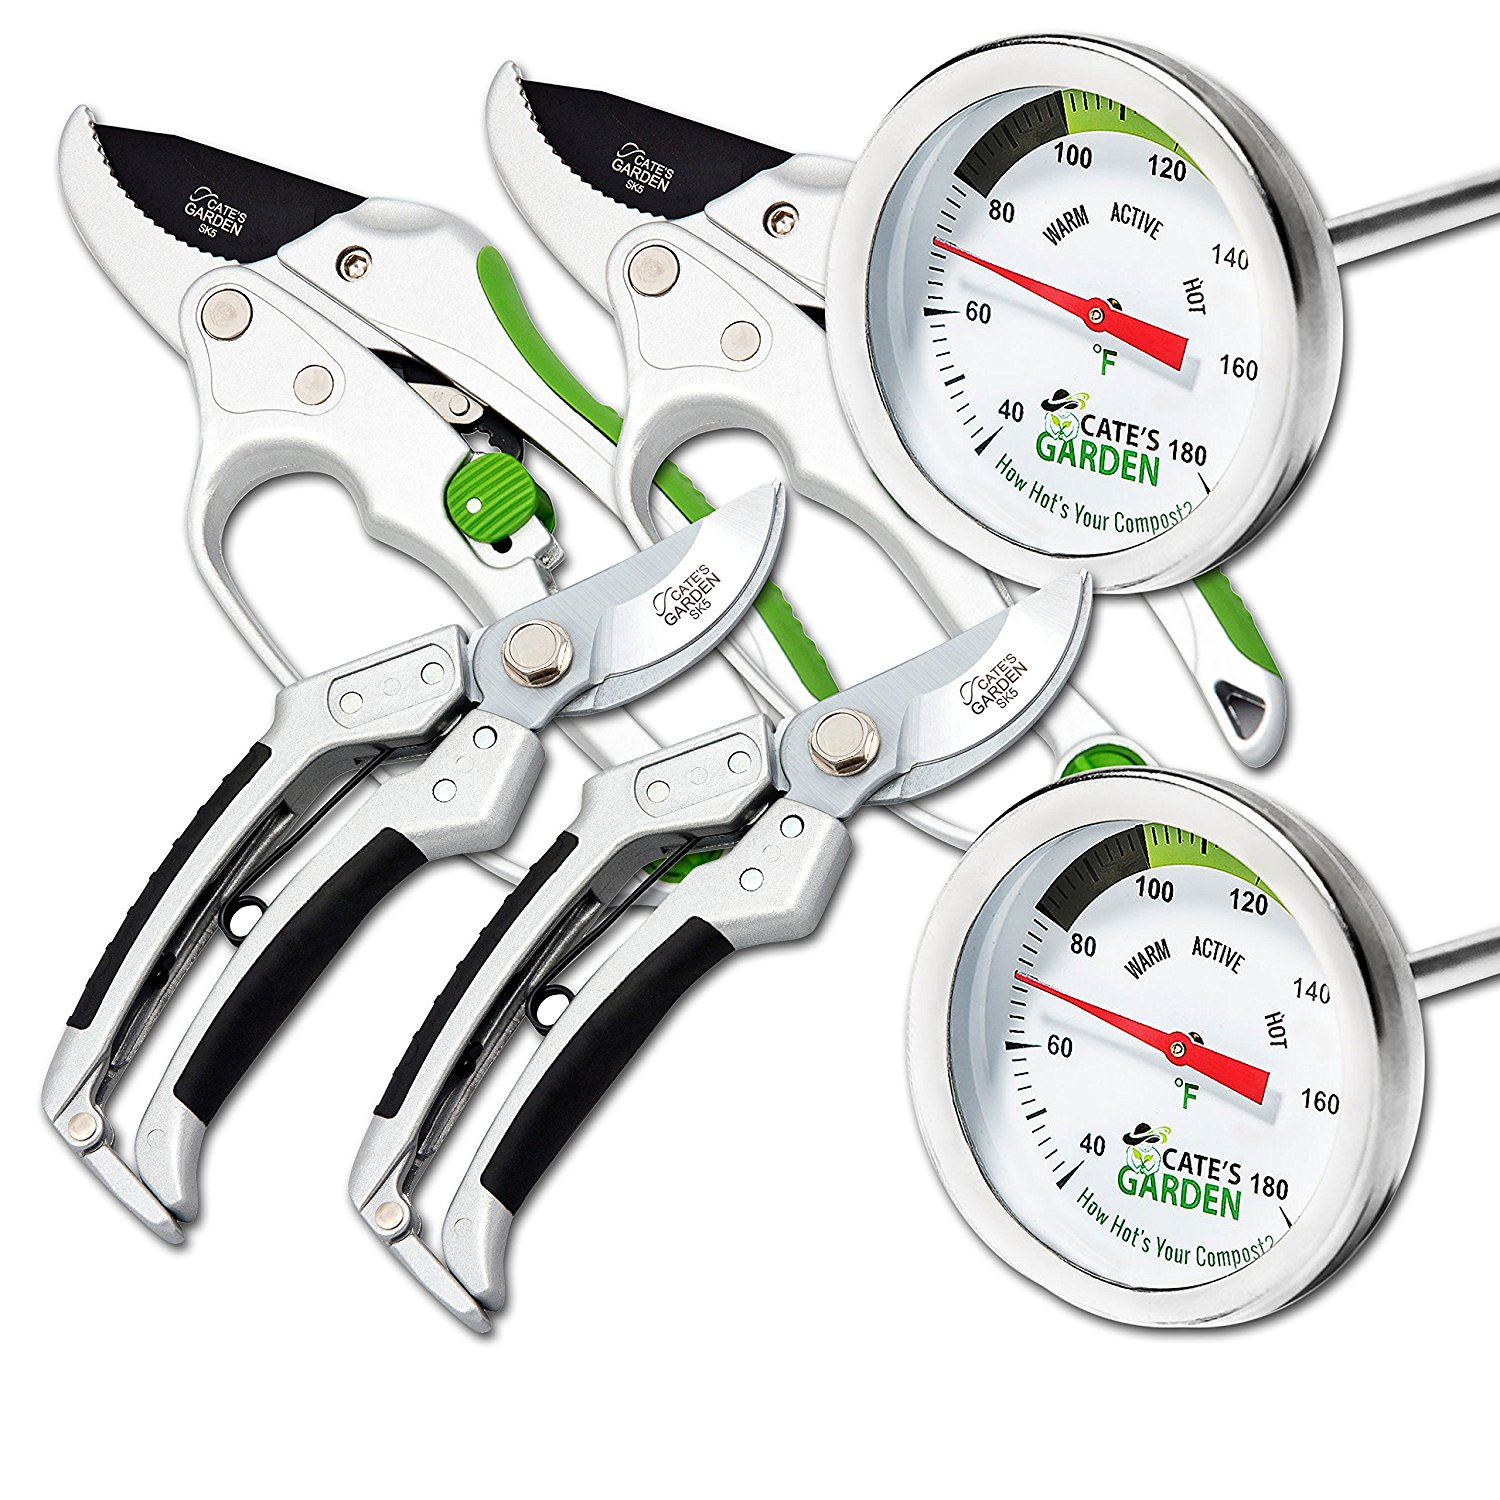 "Cate's Garden 6-Piece Garden Tool Set- 2 Compost Thermometer Premium Stainless Steel, 2 Bypass & 2 Ratchet Pruning Shears 8"" Easy Action Anvil-type Hand Pruner - Heavy Duty SK5 High Carbon Blades"